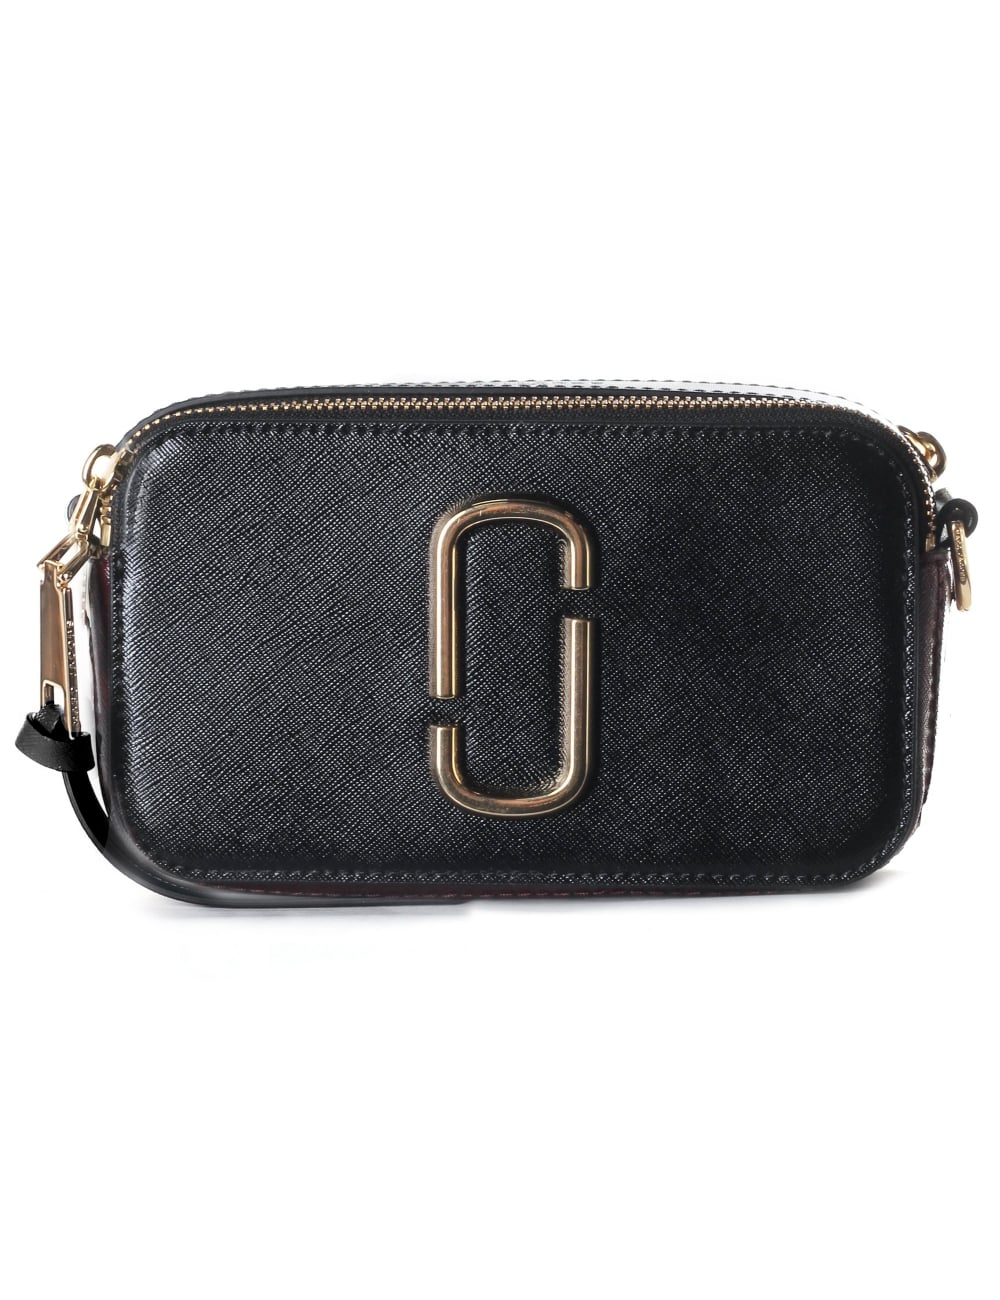 834563c10efe Marc Jacobs Women s Snapshot Small Camera Bag